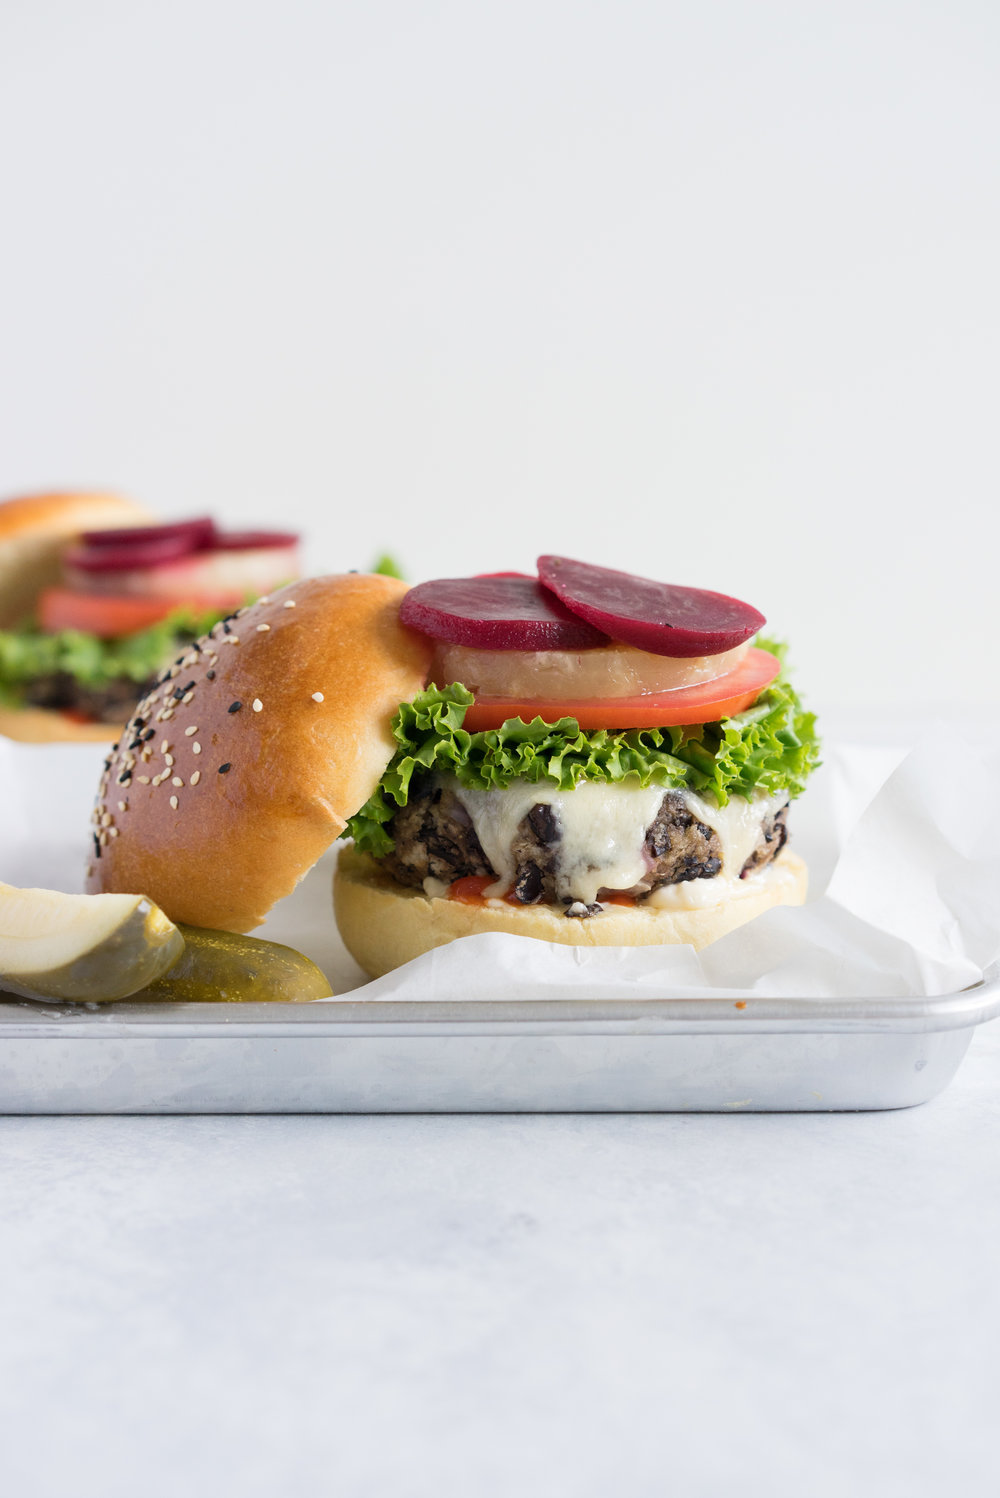 Black bean burgers with homemade brioche burger buns - the perfect vegetarian meal that even the staunchest of hamburger eater will love! #vegetarian #blackbeanburger